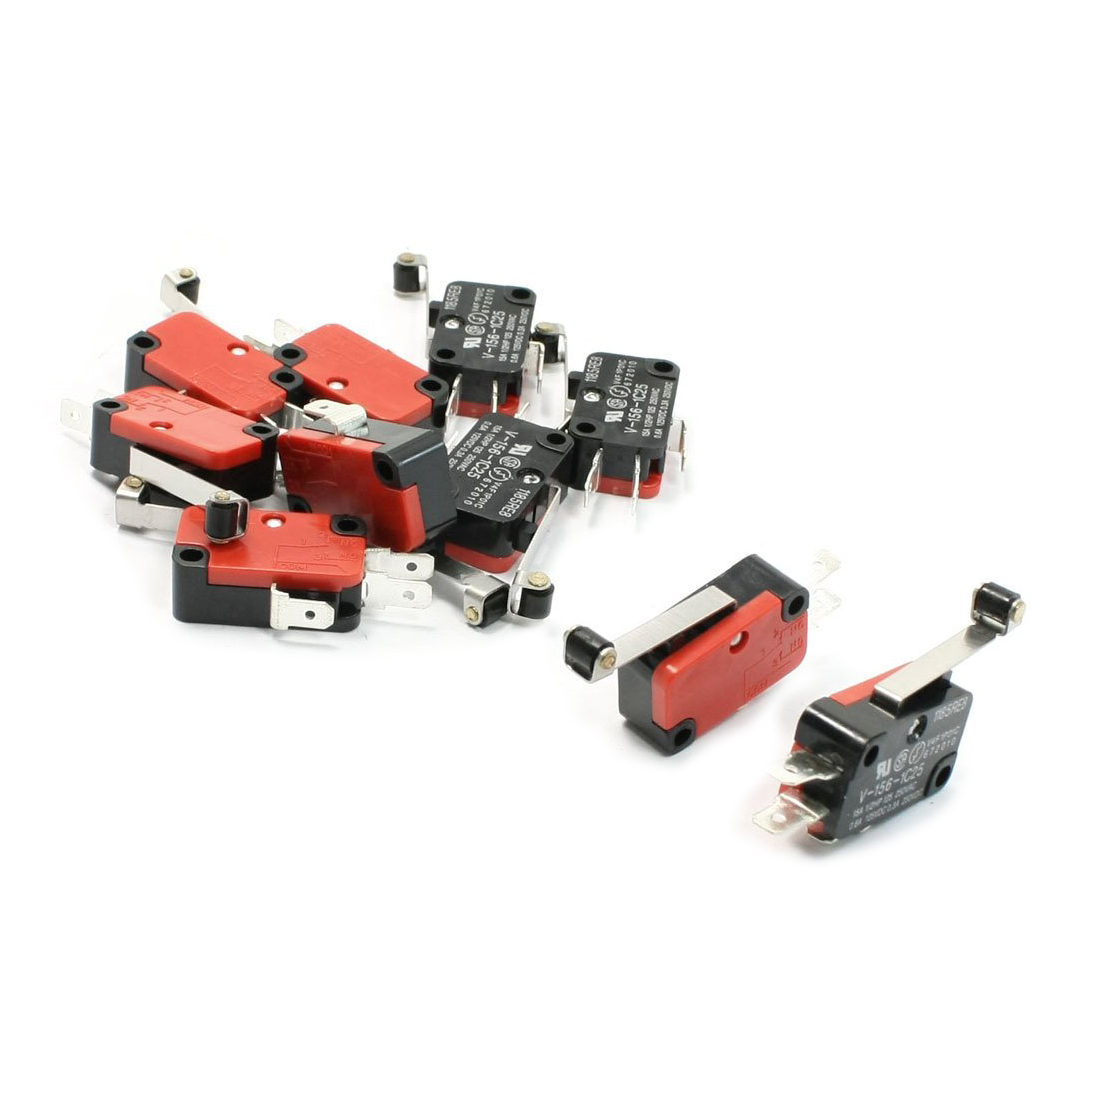 Promotion! 10 Pcs Micro Limit Switch Long Hinge Roller Lever Arm Snap Action LOT 5 pcs micro limit switch long hinge lever arm spdt snap action cnc lot v 153 1c25